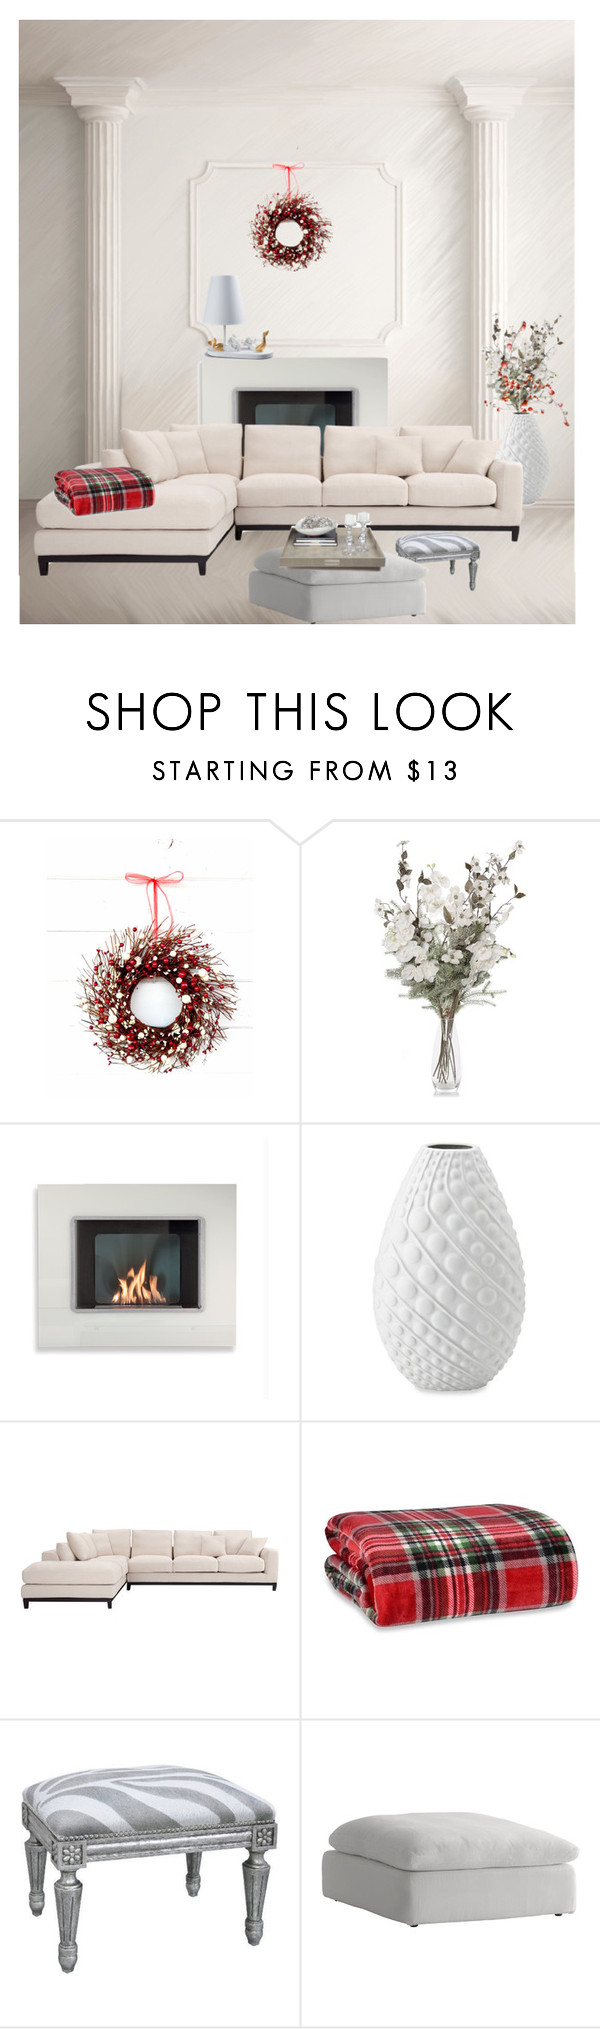 """""""In White"""" by marijana71 ❤ liked on Polyvore featuring interior, interiors, interior design, home, home decor, interior decorating, Bombay, Berkshire, Oly and Andrew Martin"""